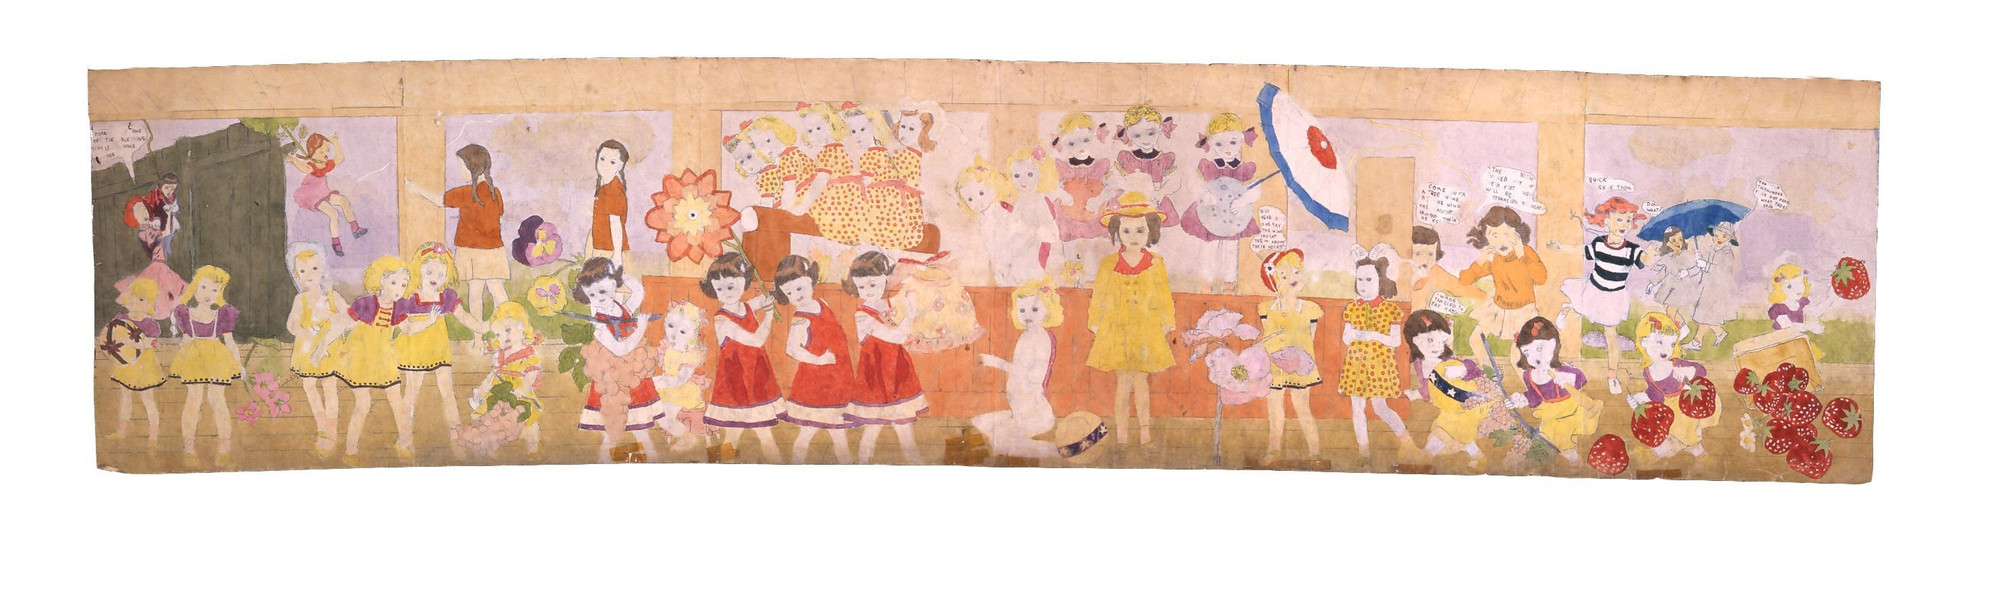 Henry Darger. a) Untitled (Grape shaped damna fruit) b) Untitled (Vines strangling girls). (n.d.)